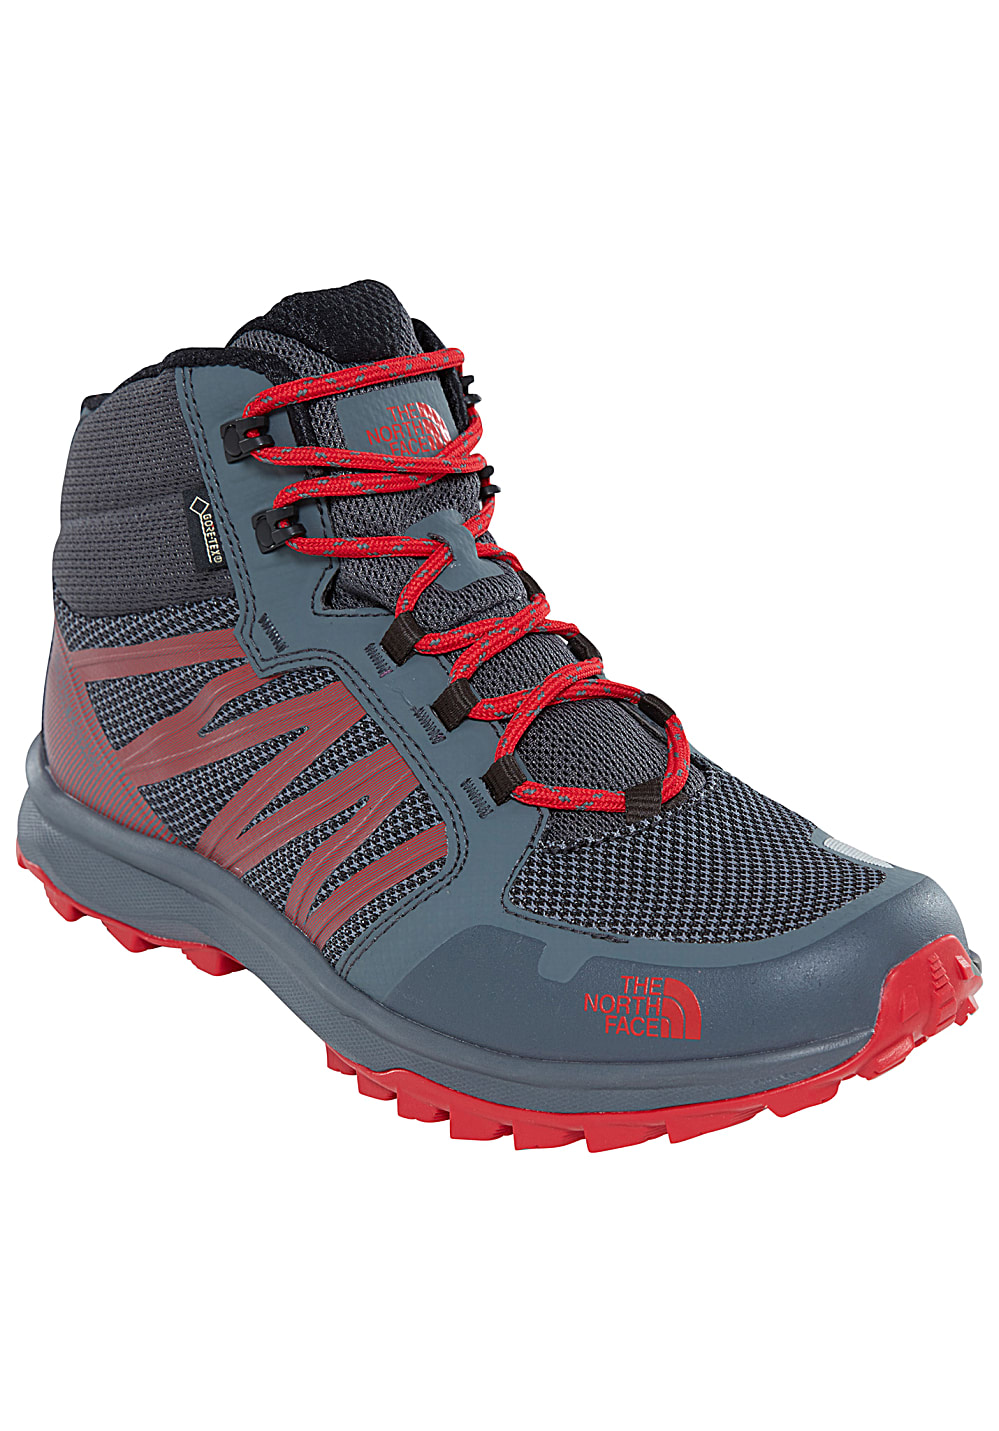 fb31e028a THE NORTH FACE Litewave Fastpack Mid GTX - Trekking Shoes for Men - Grey